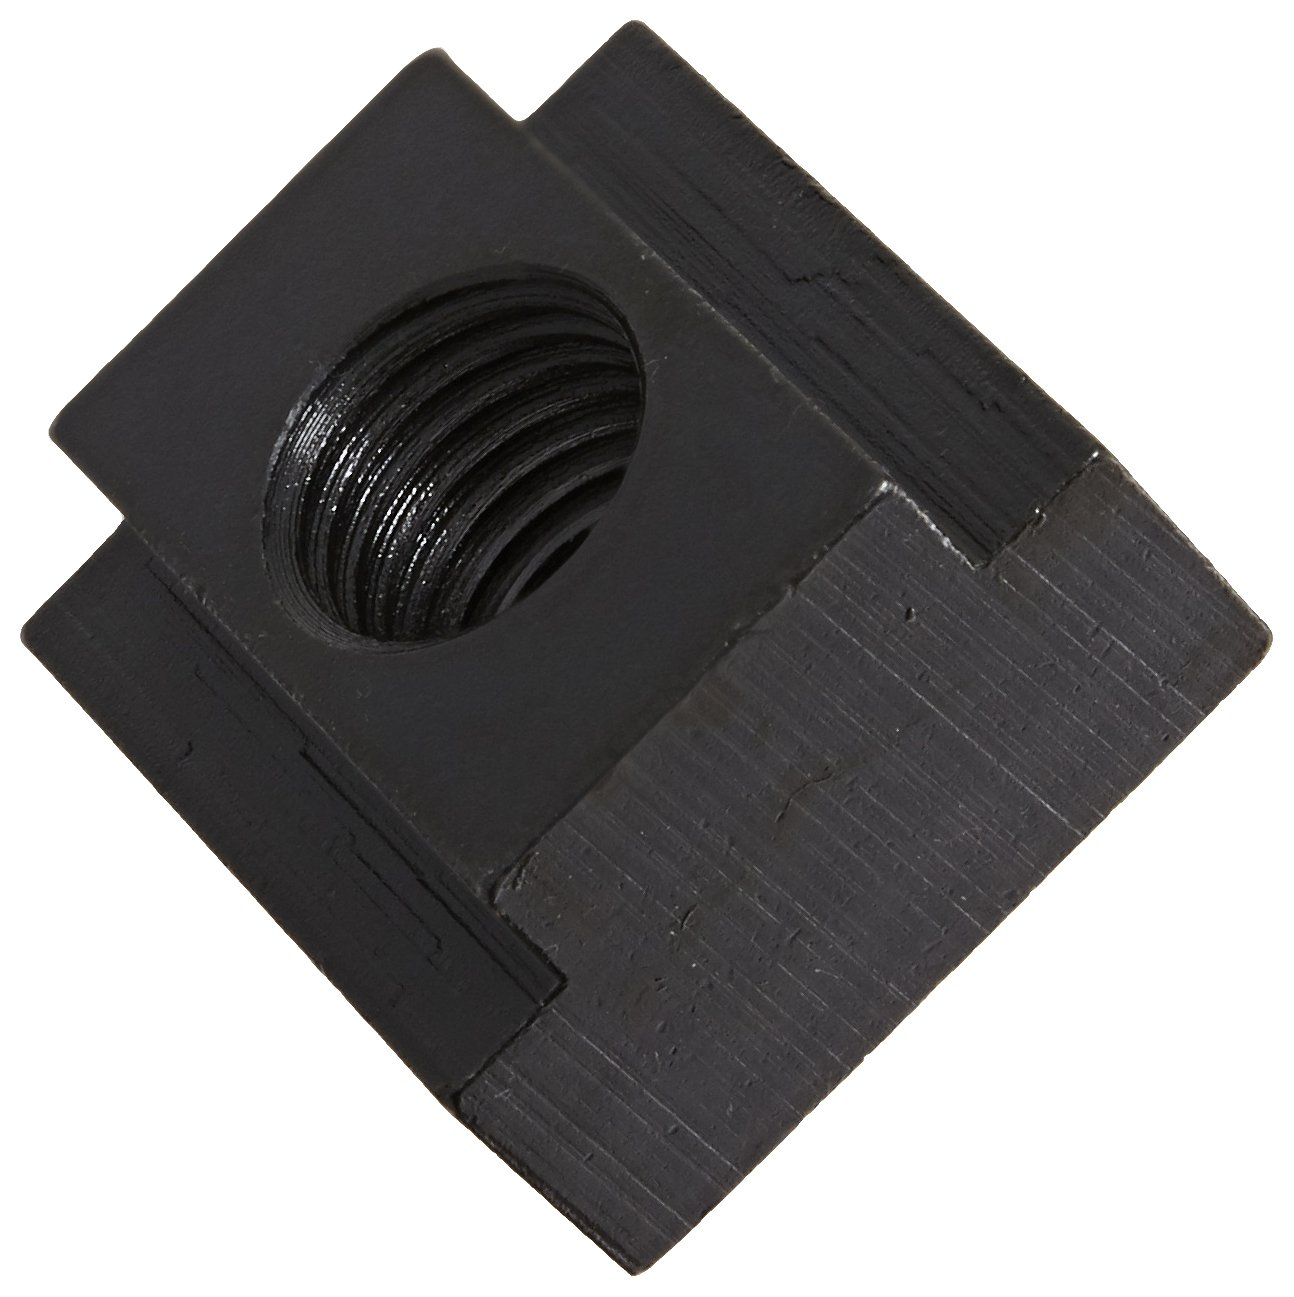 1018 Steel T-Slot Nut, Black Oxide Finish, Grade 10, 1''-8 Threads, 1-1/4'' Height, 1-1/4'' Slot Depth, Made in US (Pack of 2)